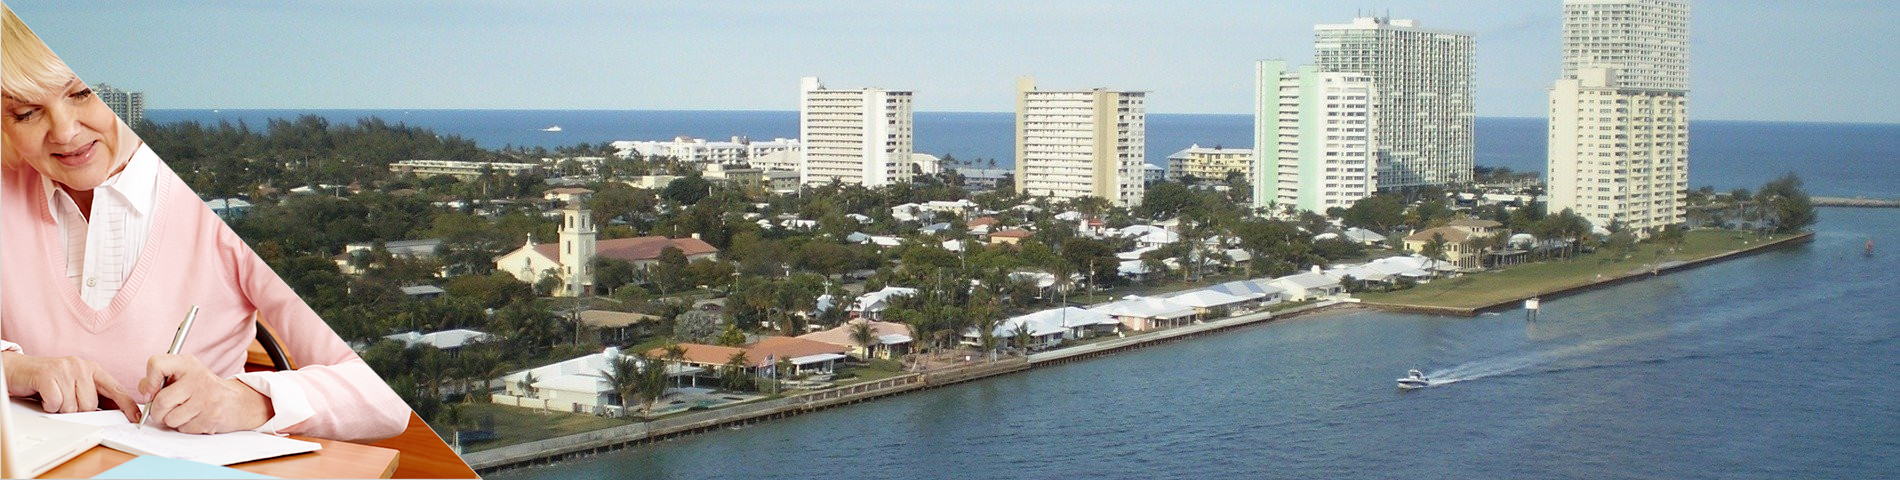 Fort Lauderdale - Senioren (50 plus)